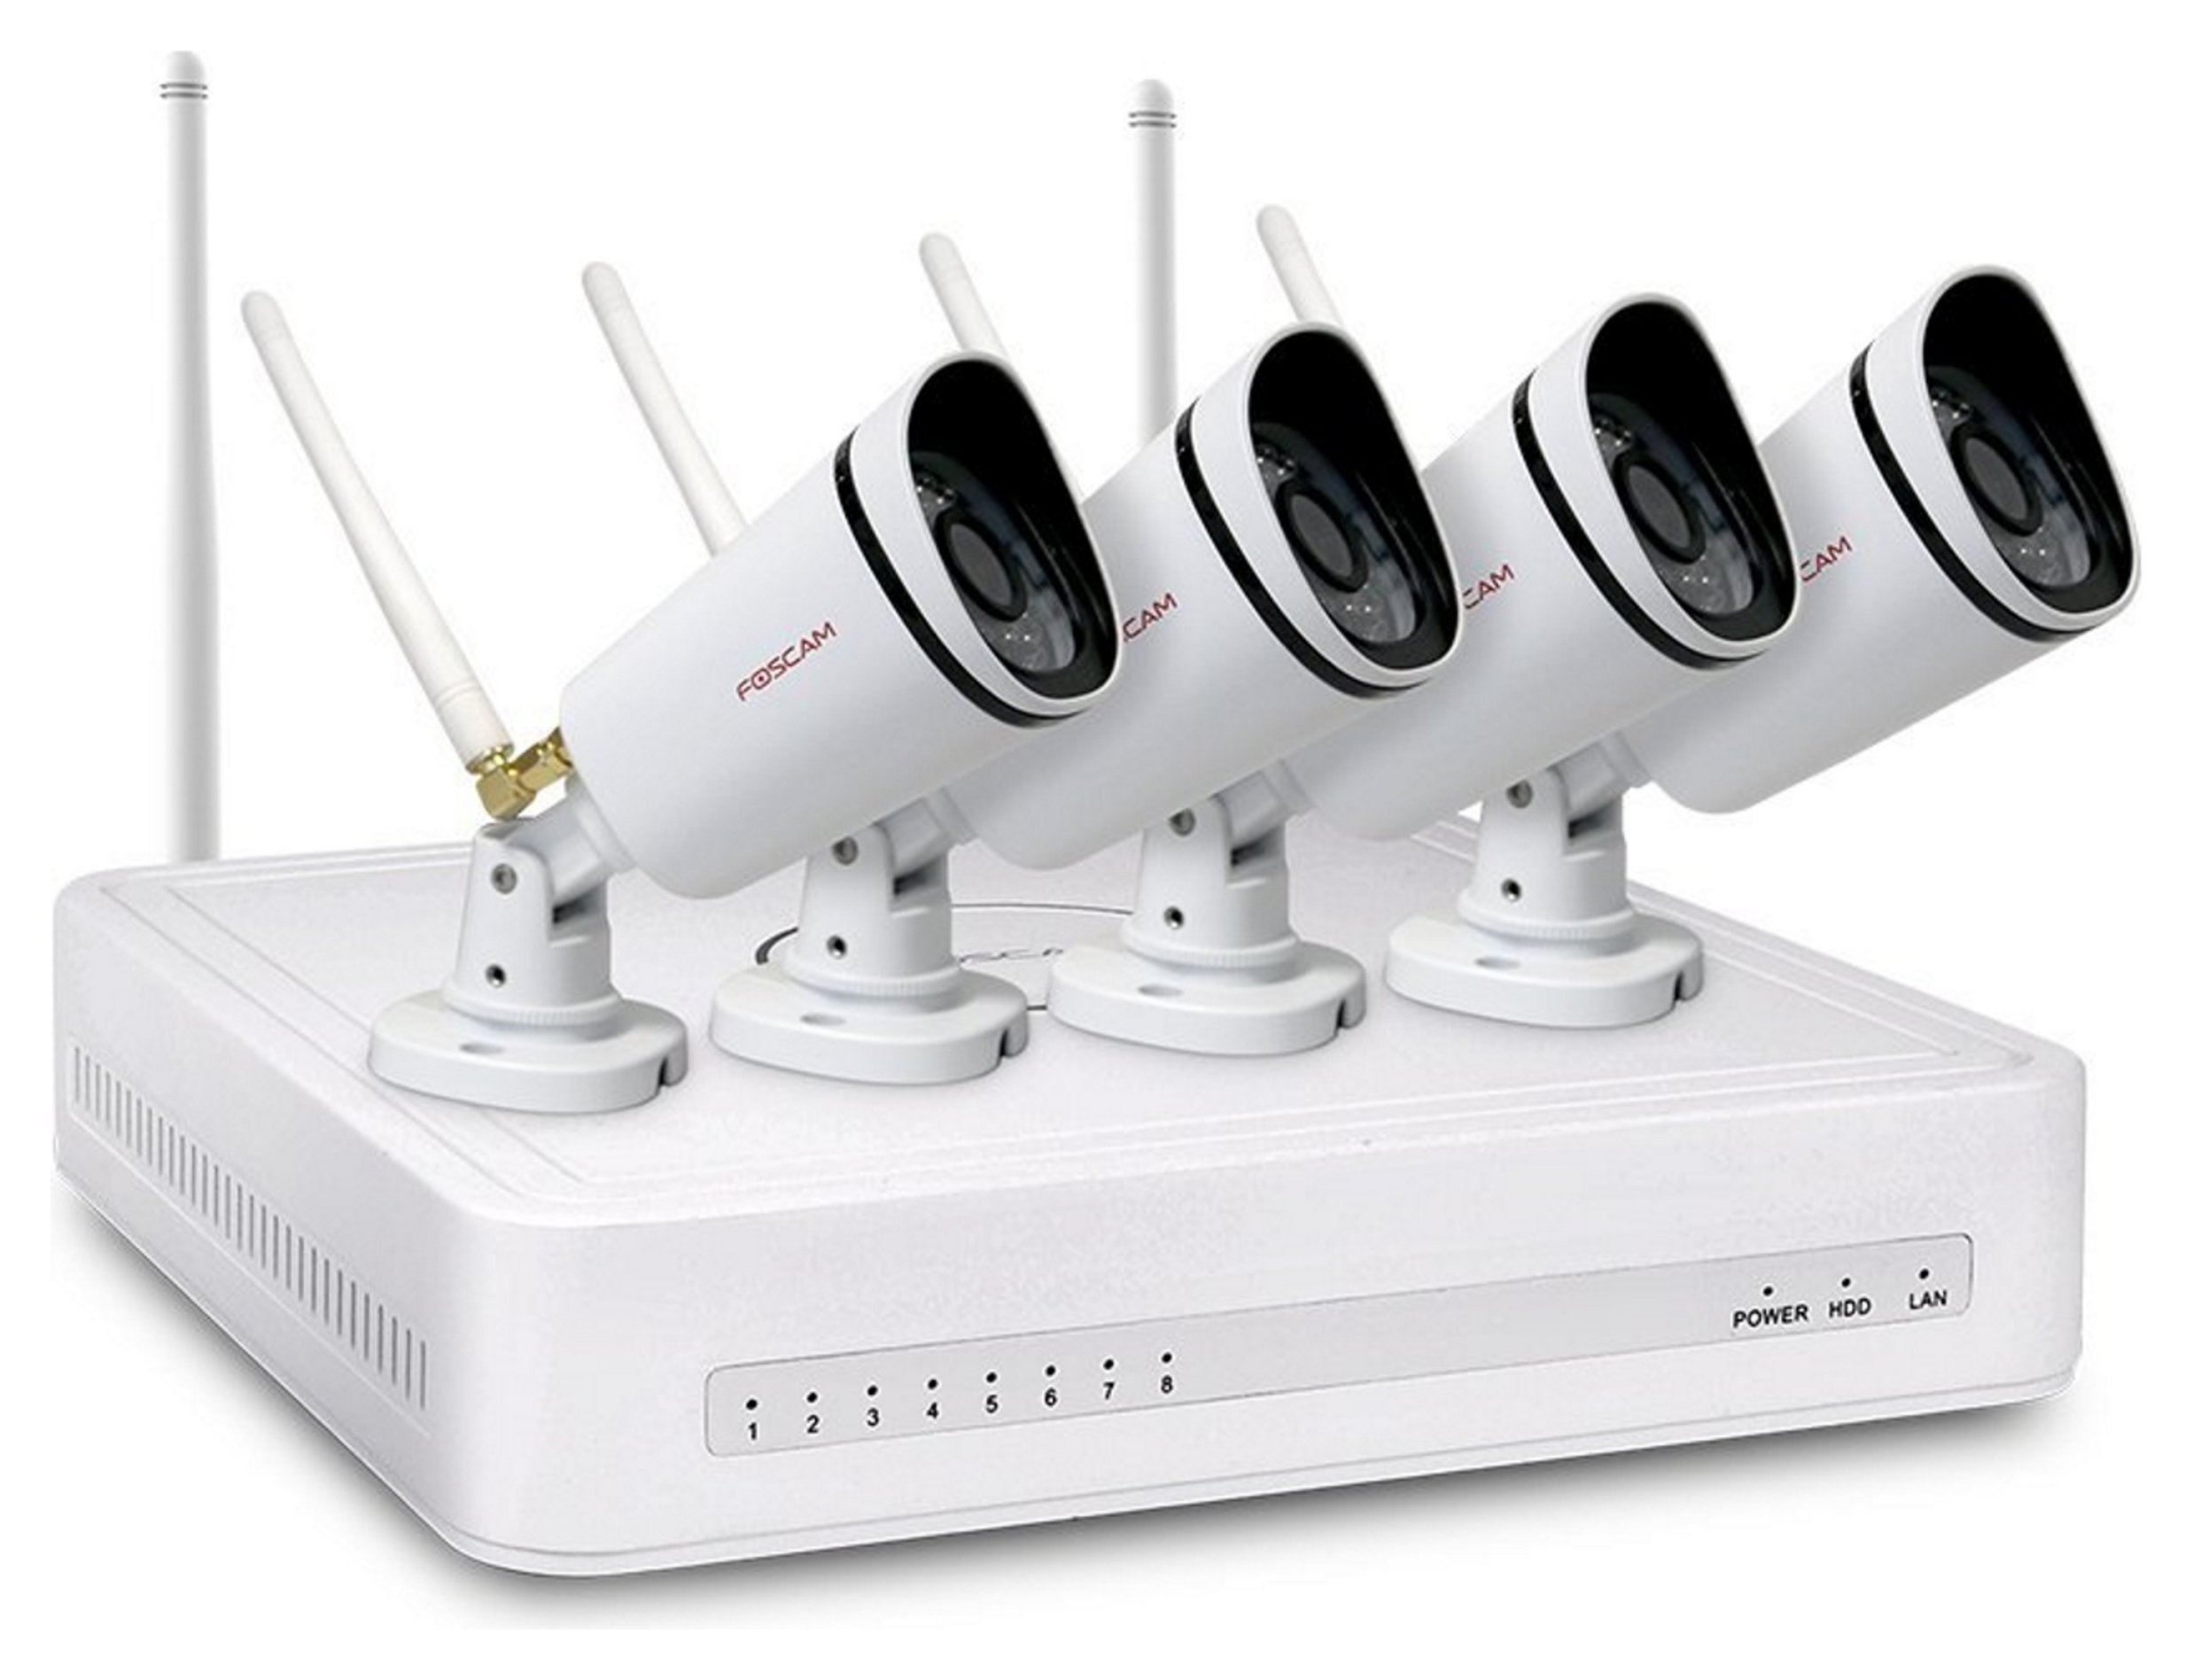 Foscam FN3104W B4 Wi-Fi CCTV Security System Kit